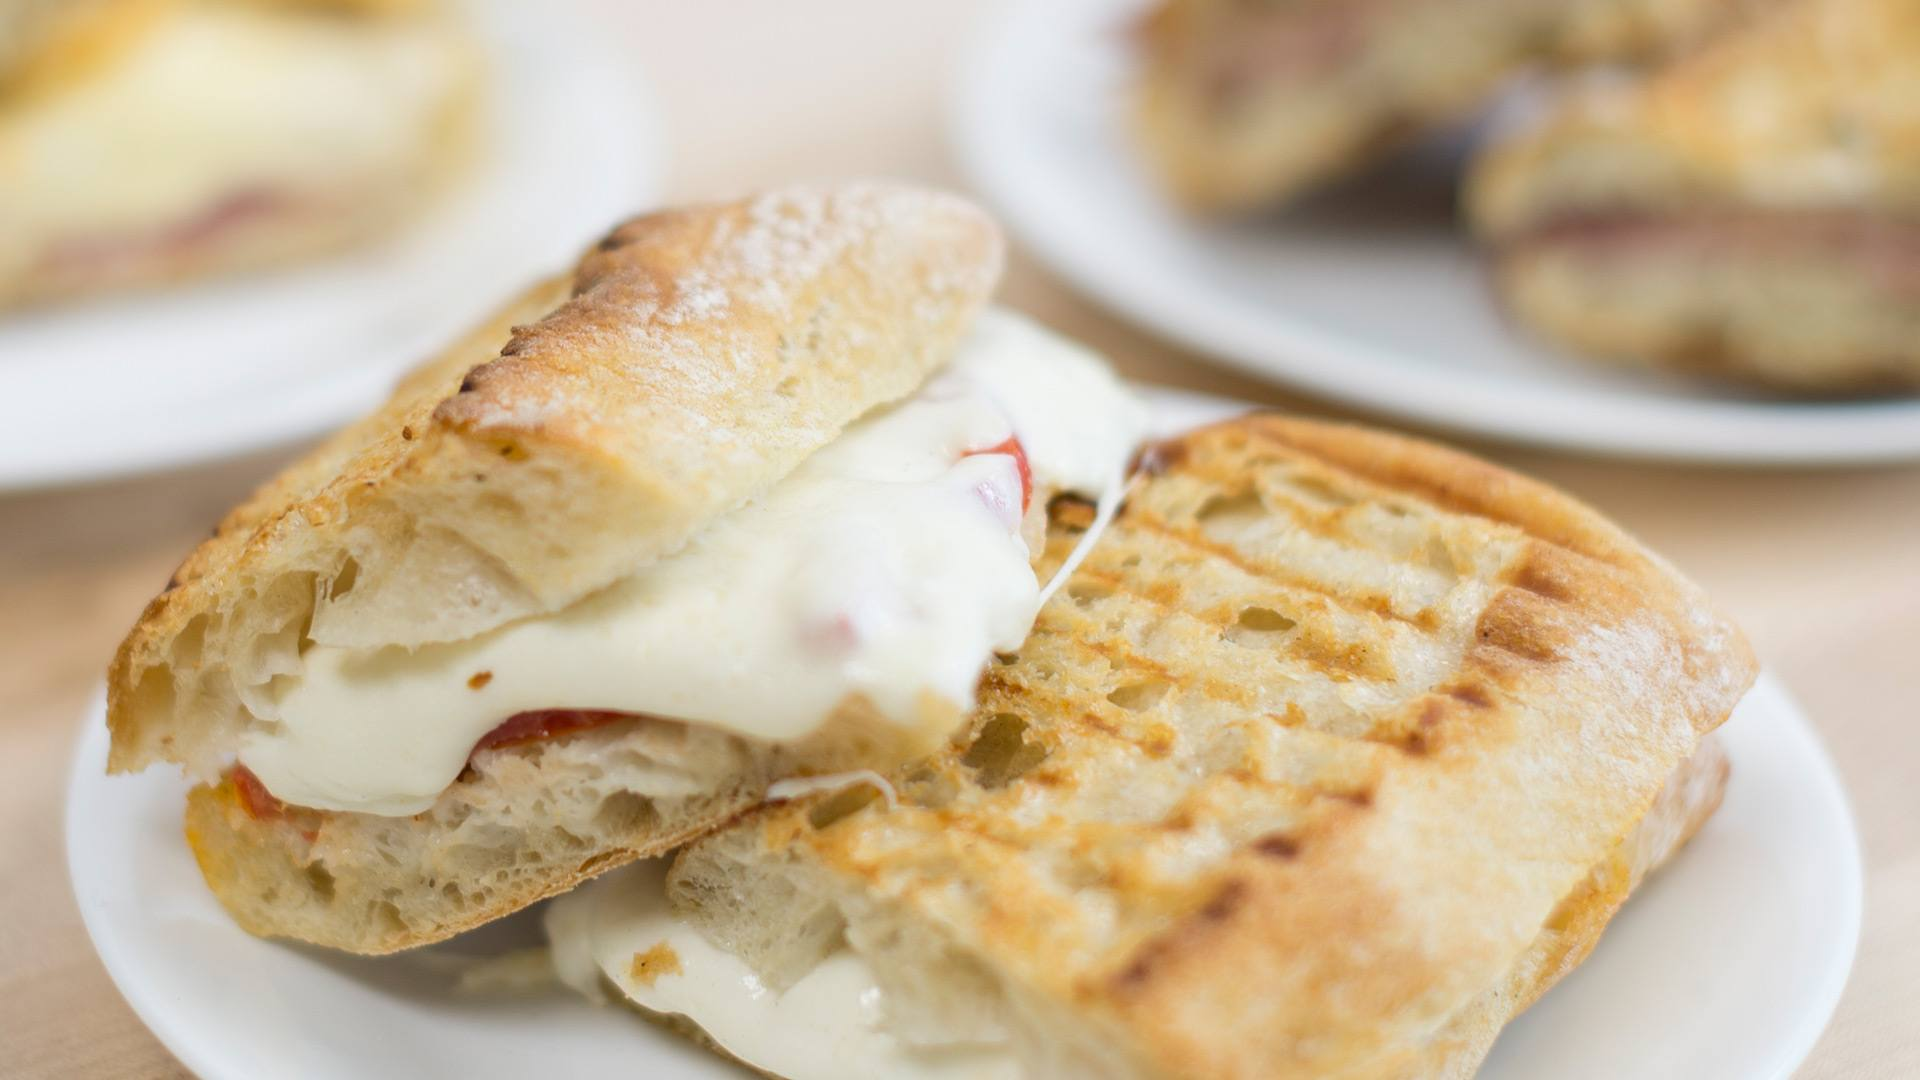 Grilled-to-order Paninis